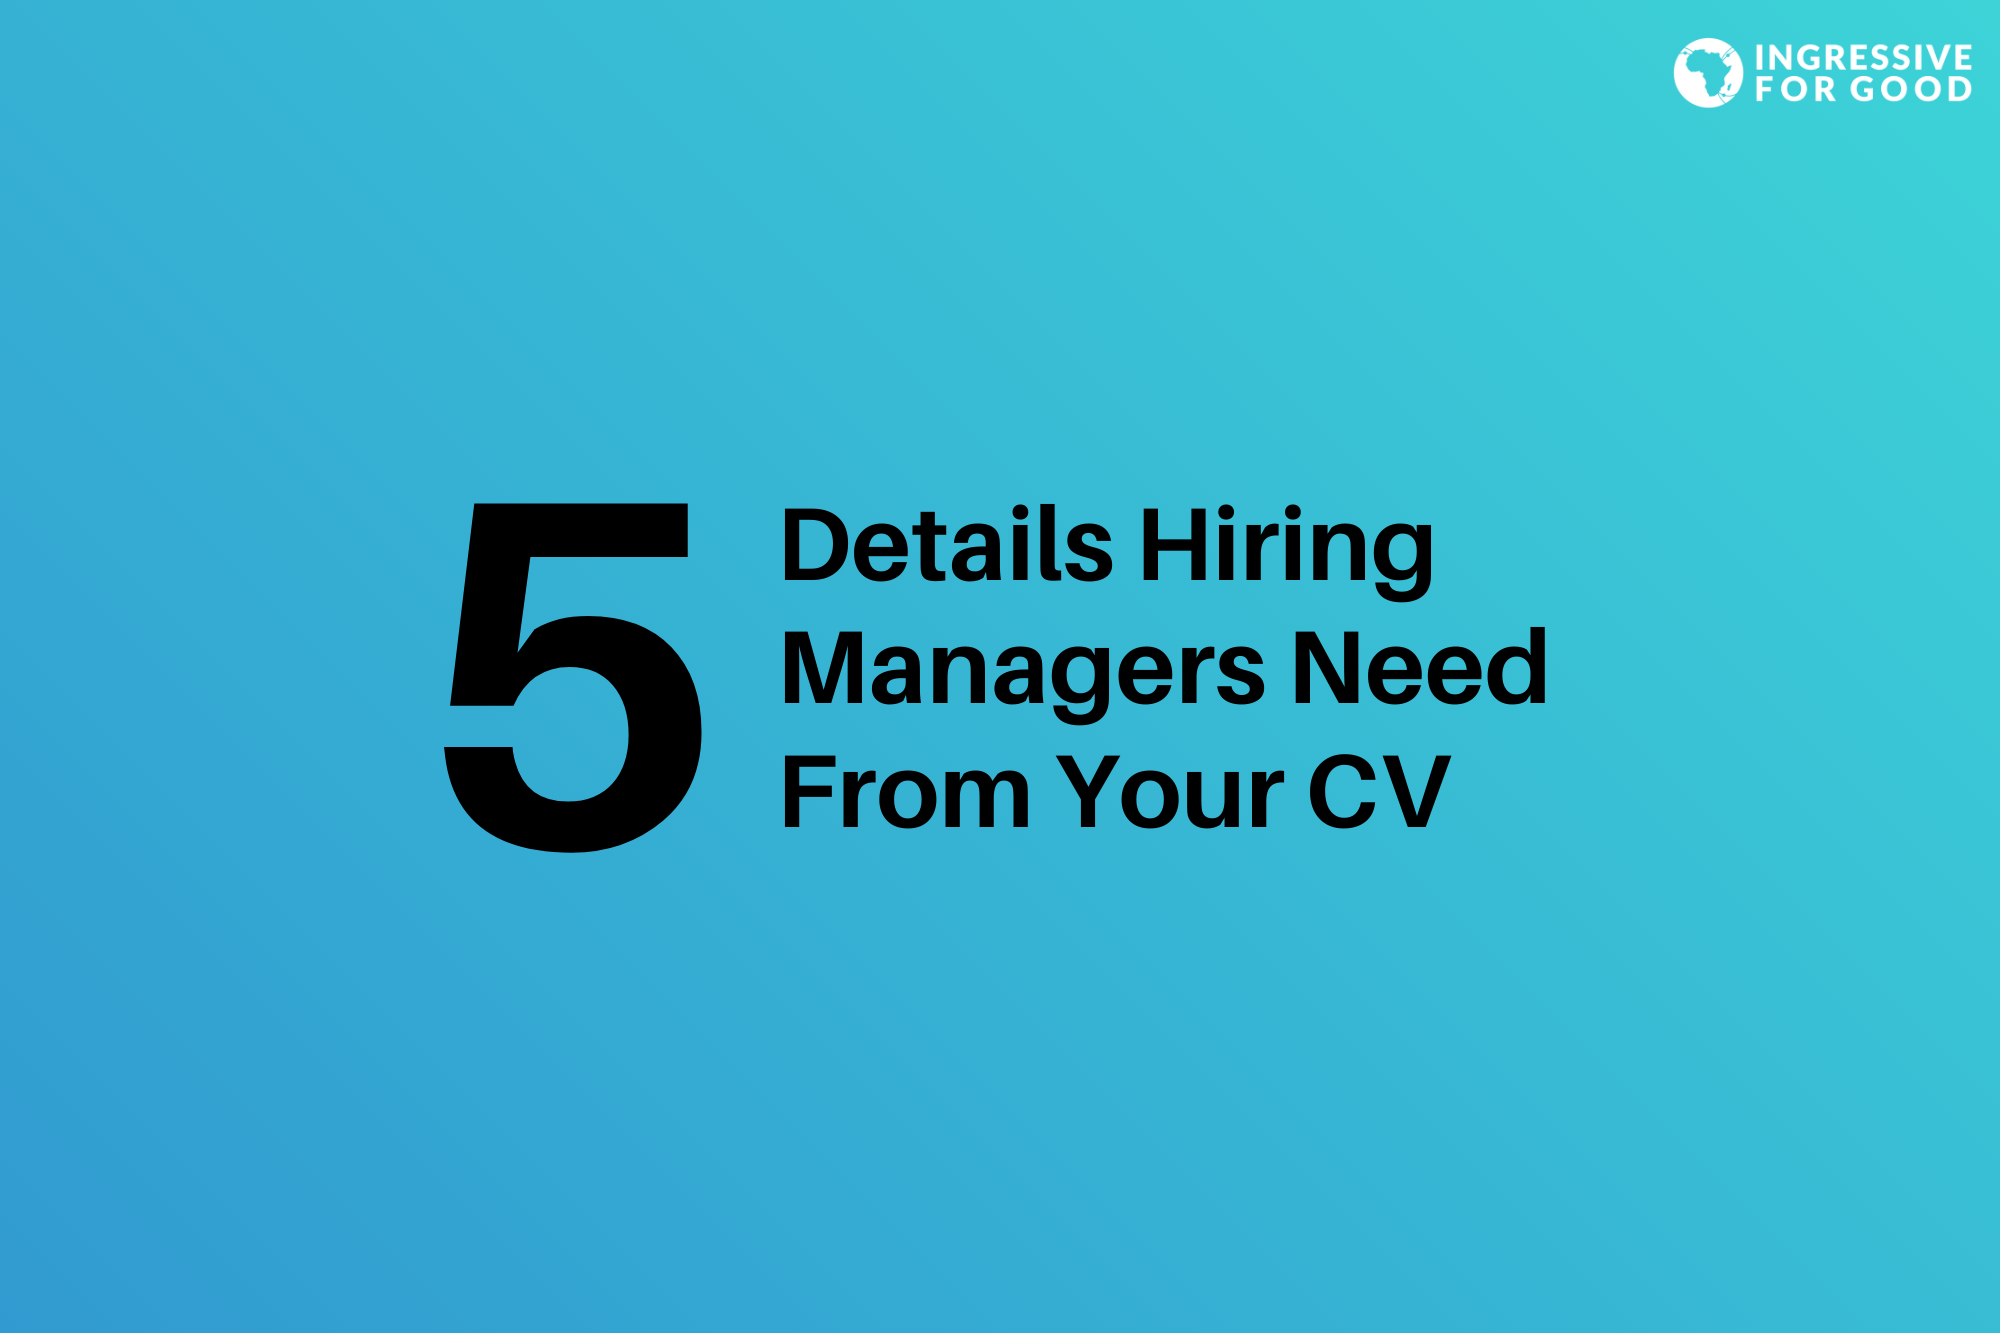 Details Hiring Managers Need From Your CV